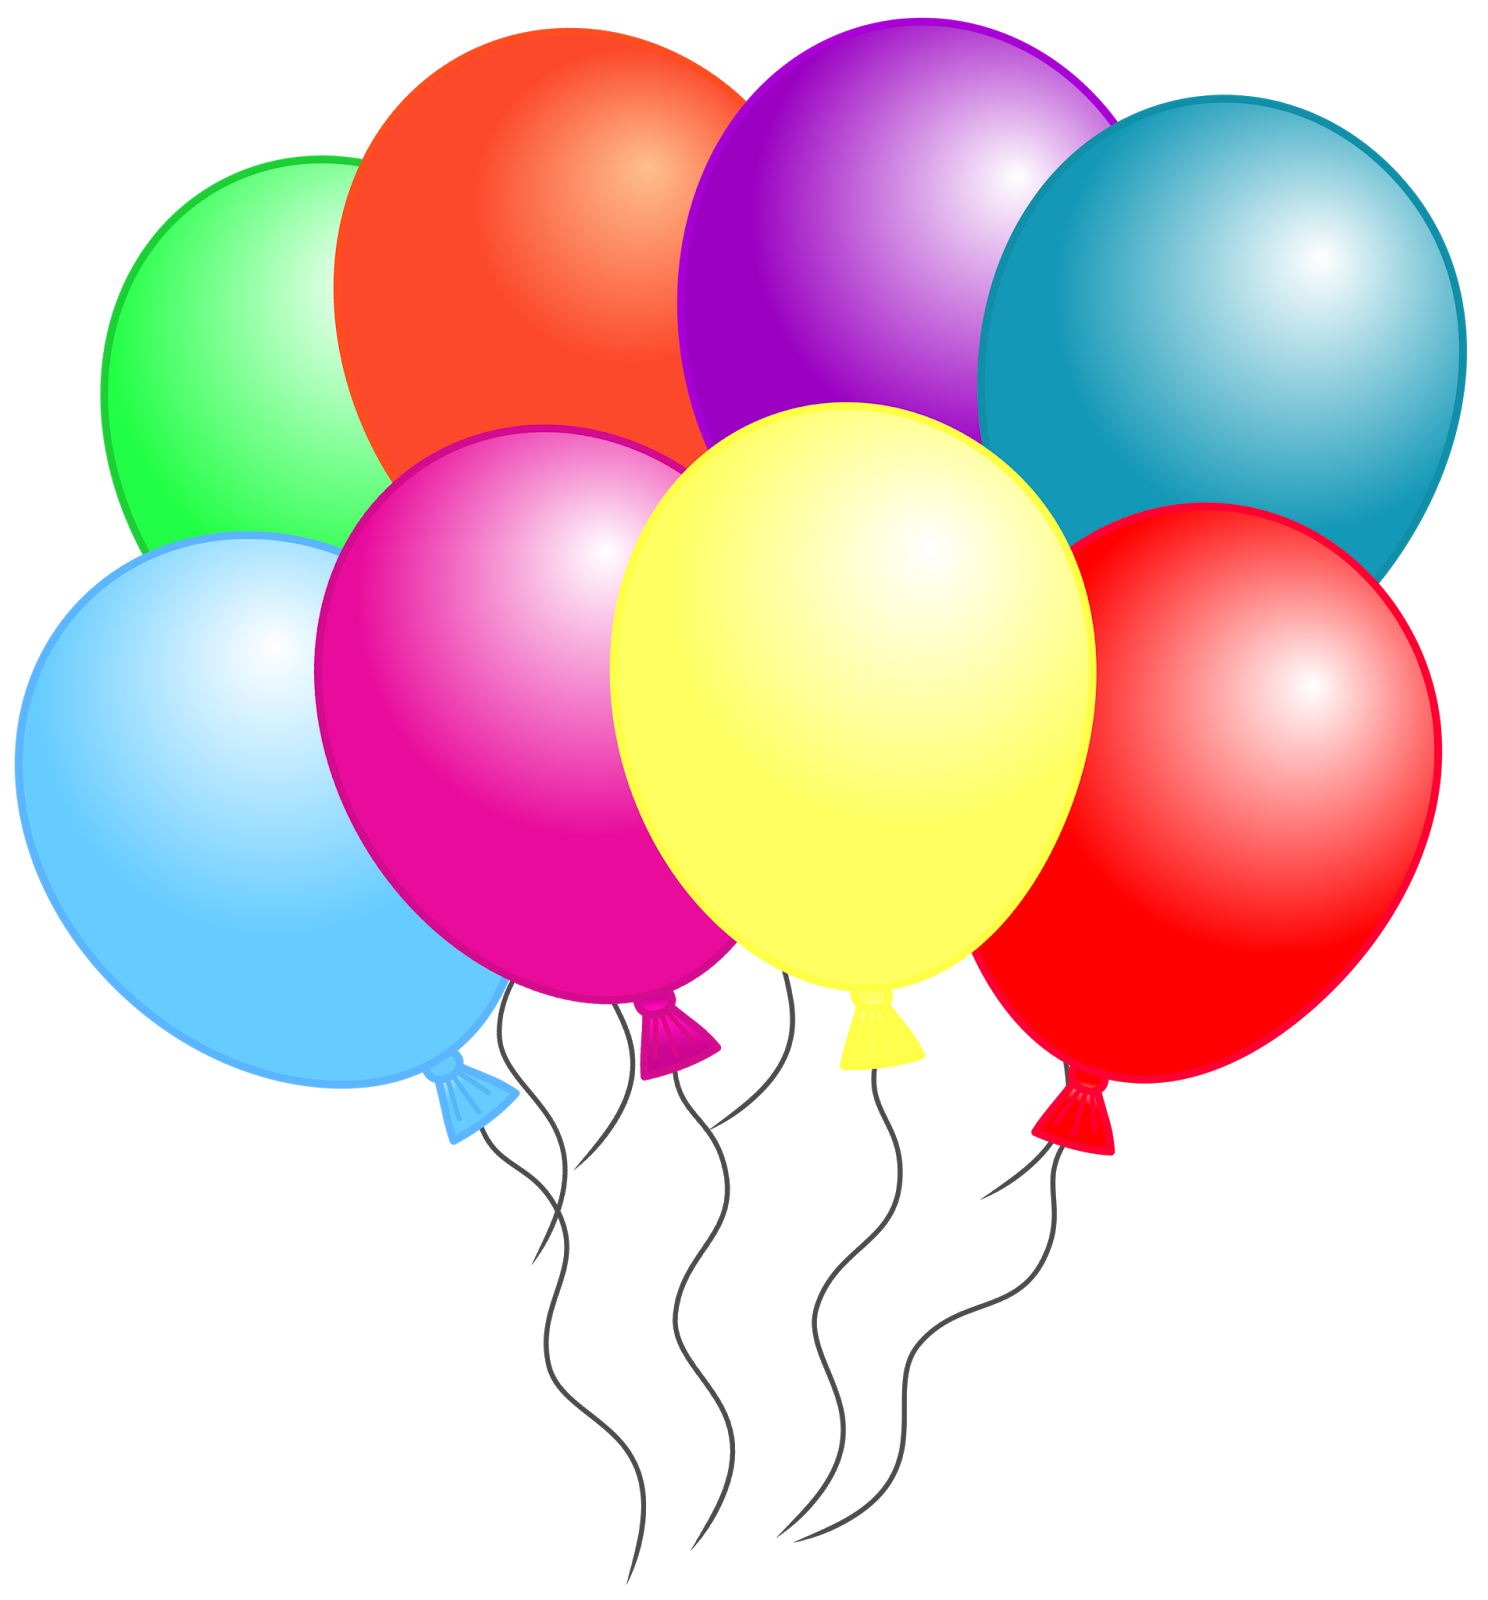 Balloon clipart that can be downloaded individually and